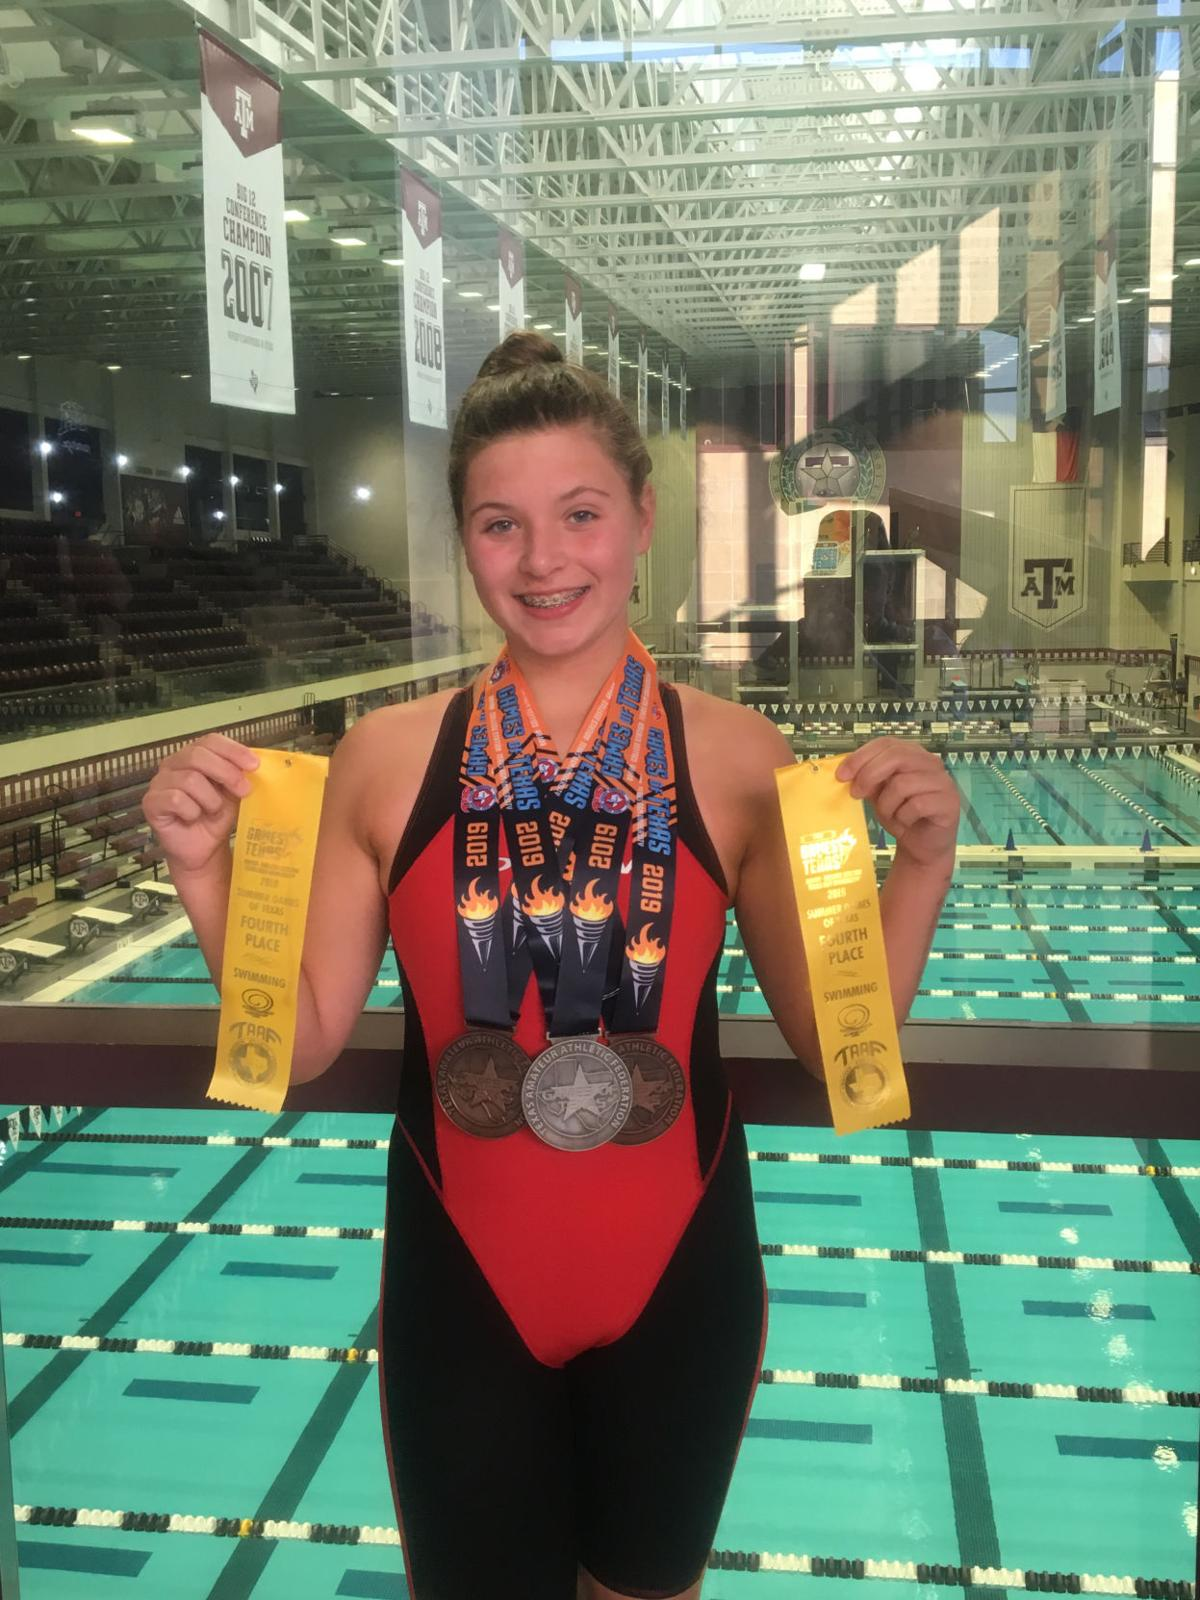 Van Vleck up-and-coming swimmers